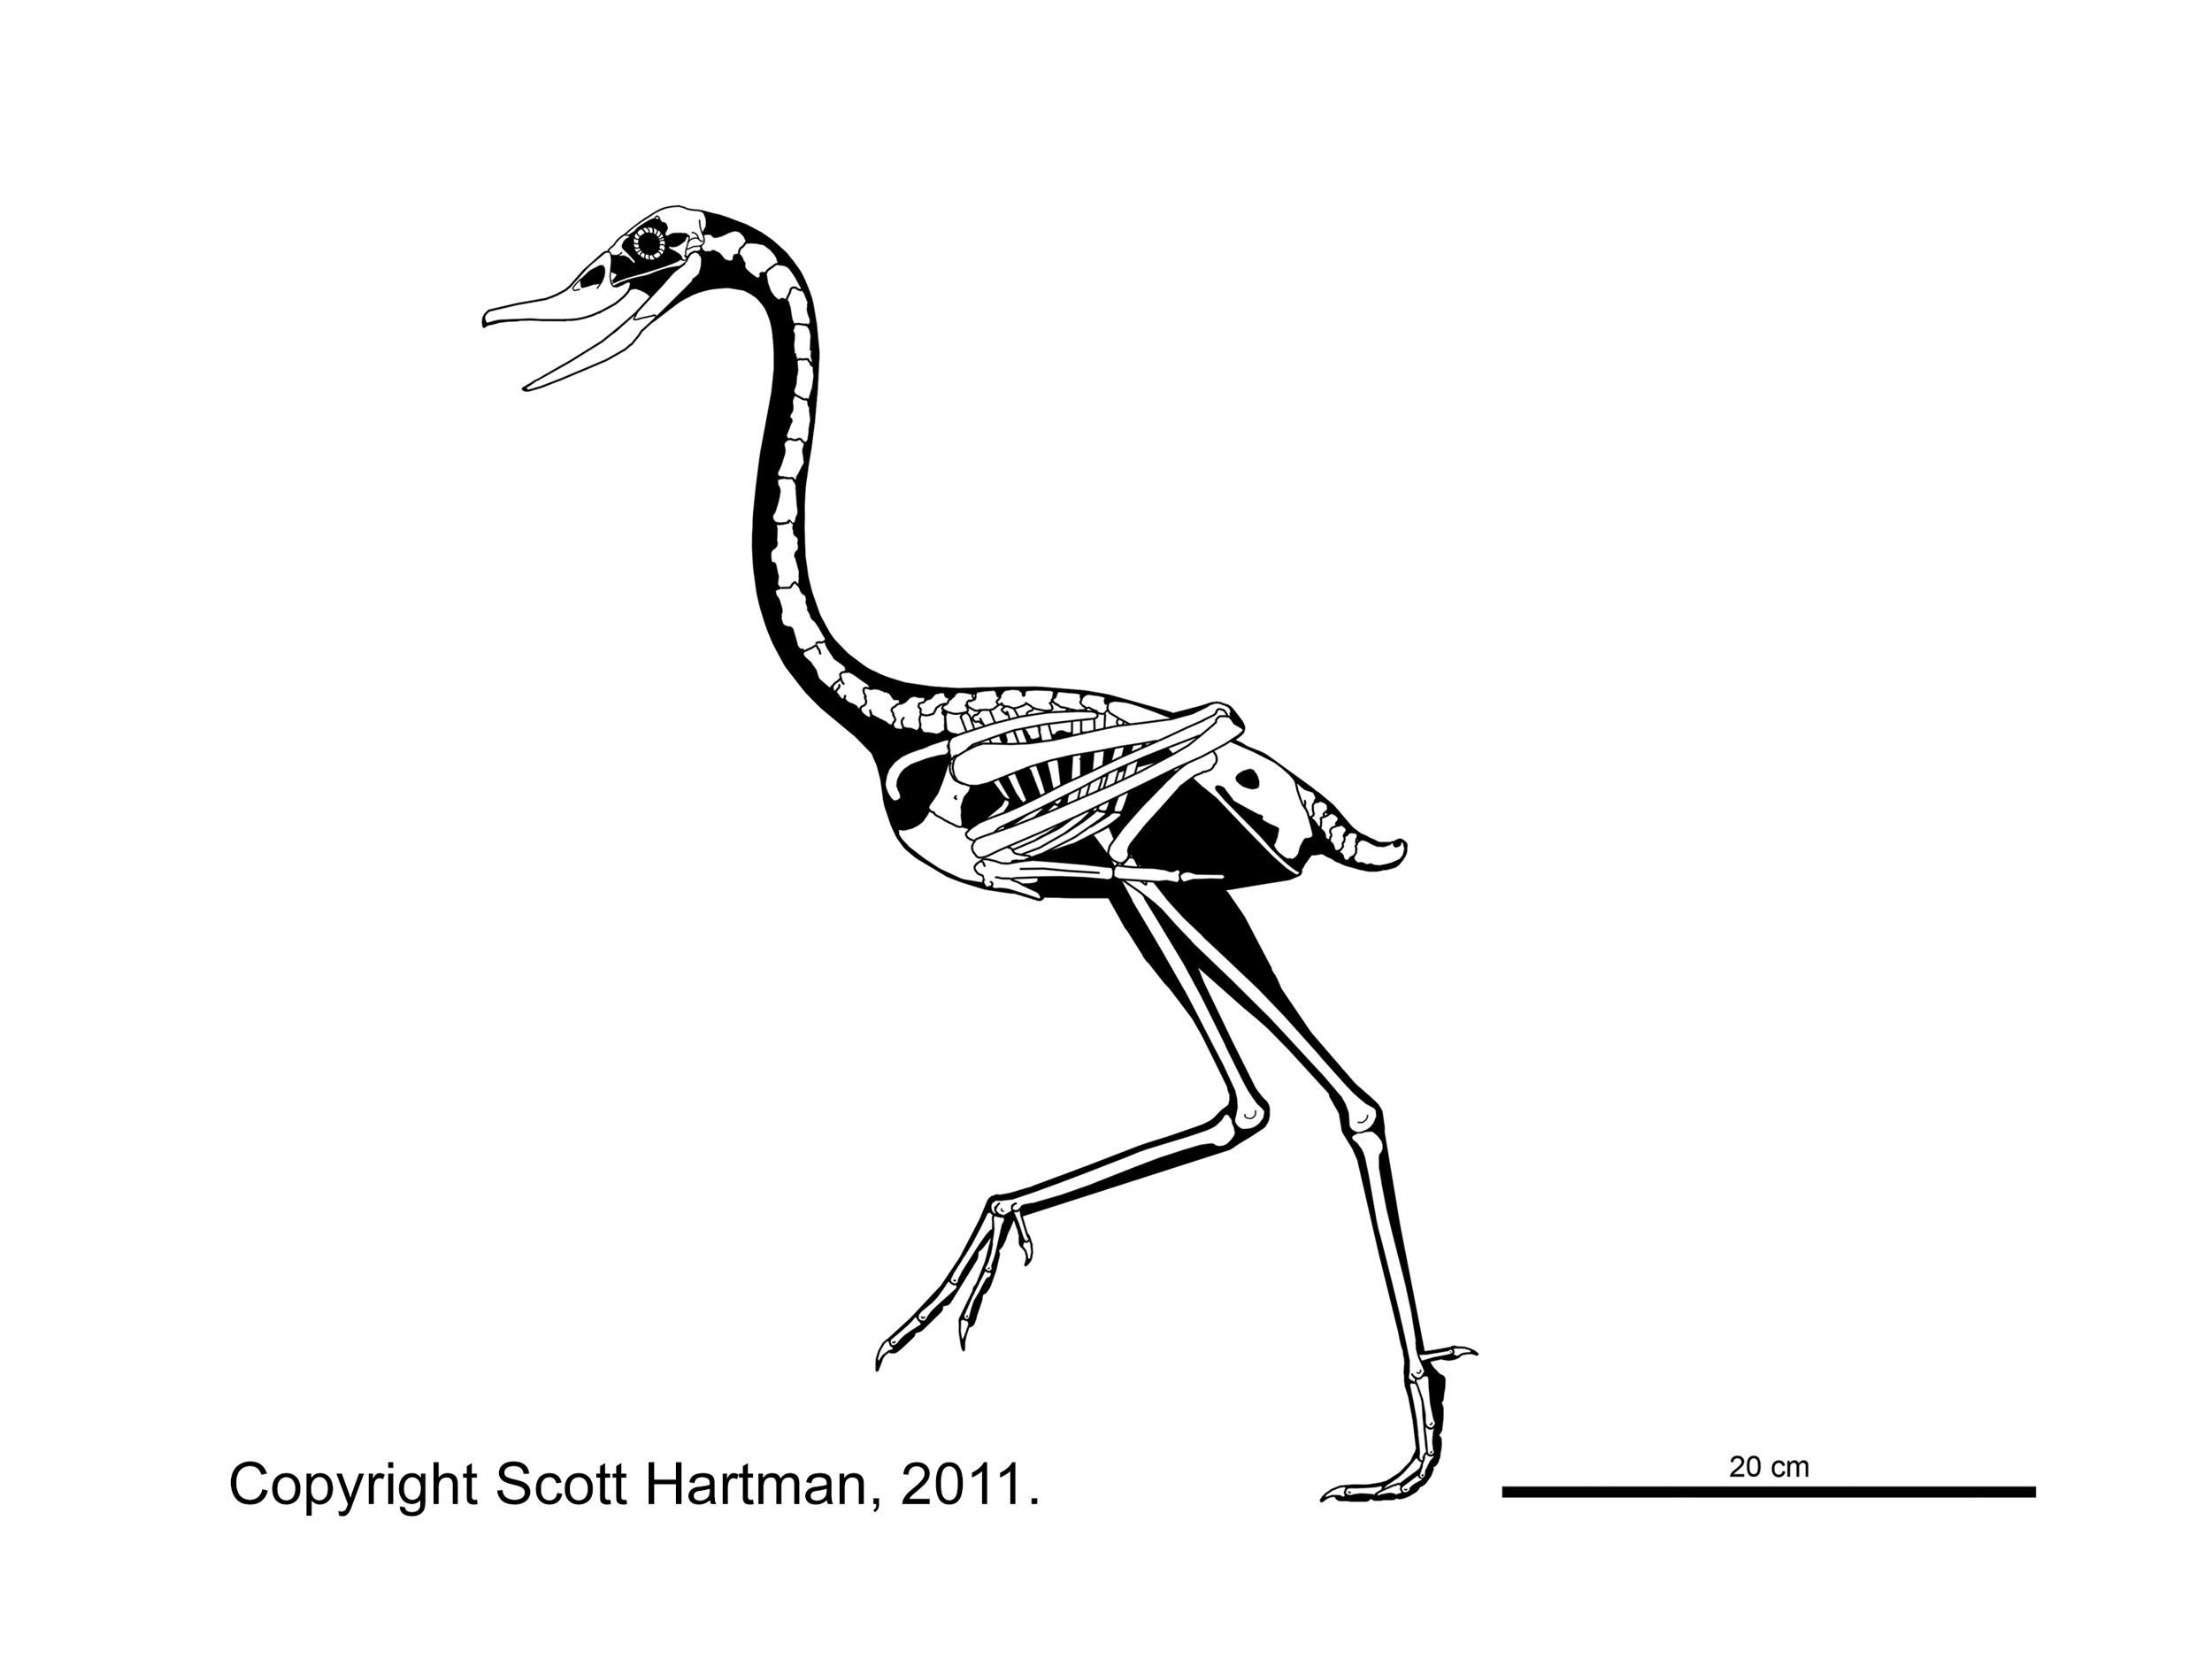 ostrich skeleton diagram what is wiring theropod skeletal reconstructionsscott hartman s drawing com